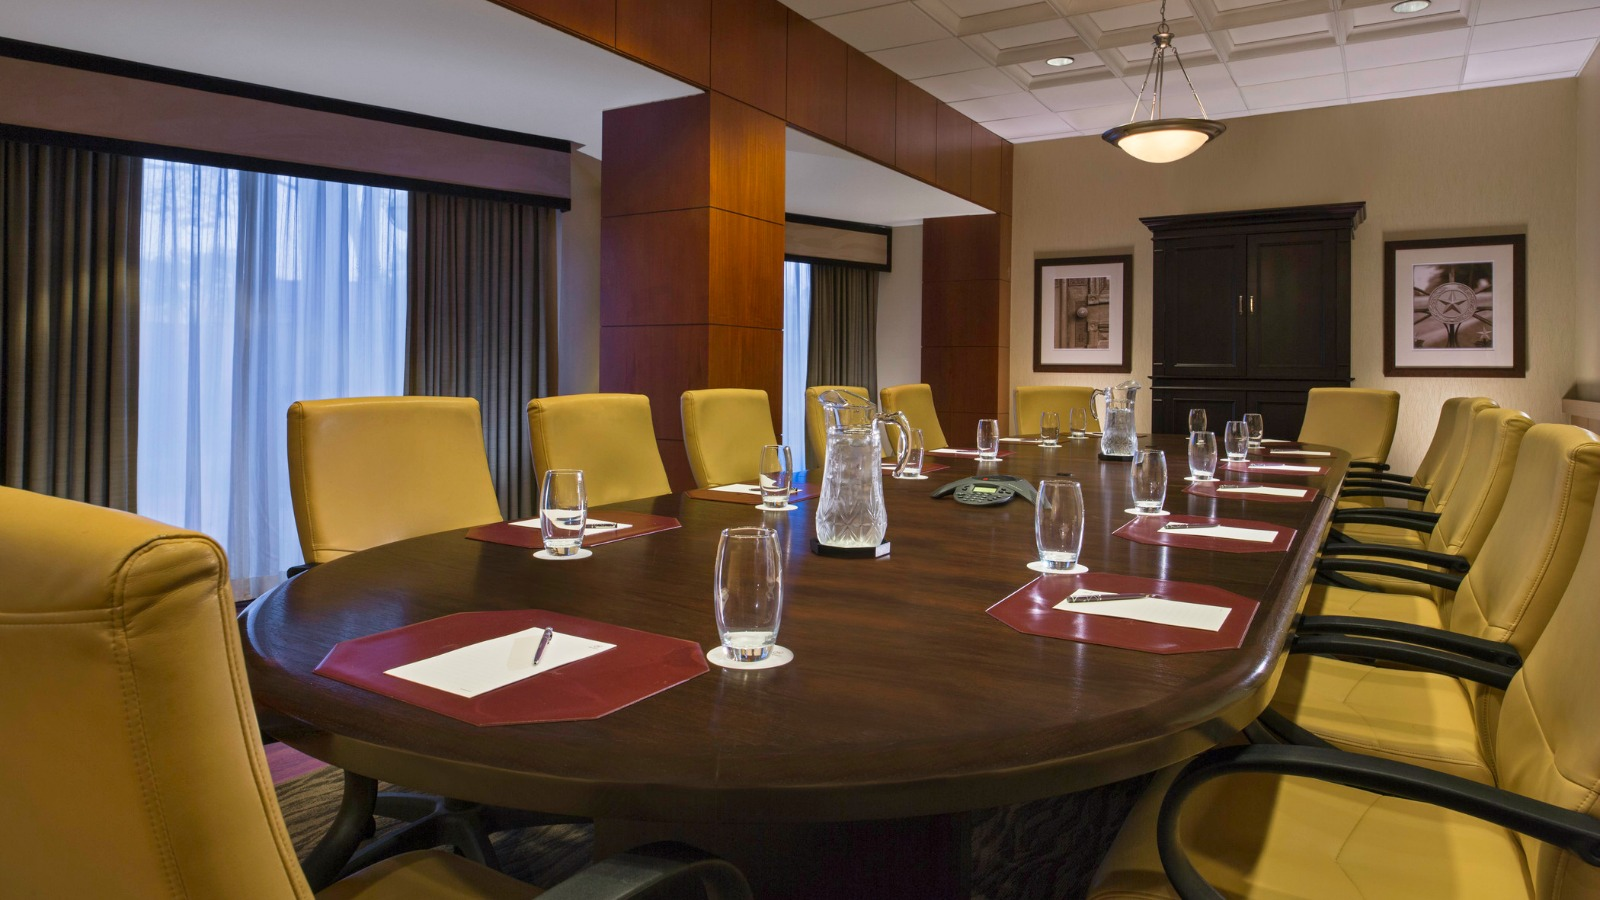 https://www.hotelsbyday.com/_data/default-hotel_image/0/2641/executive-boardroom.jpg